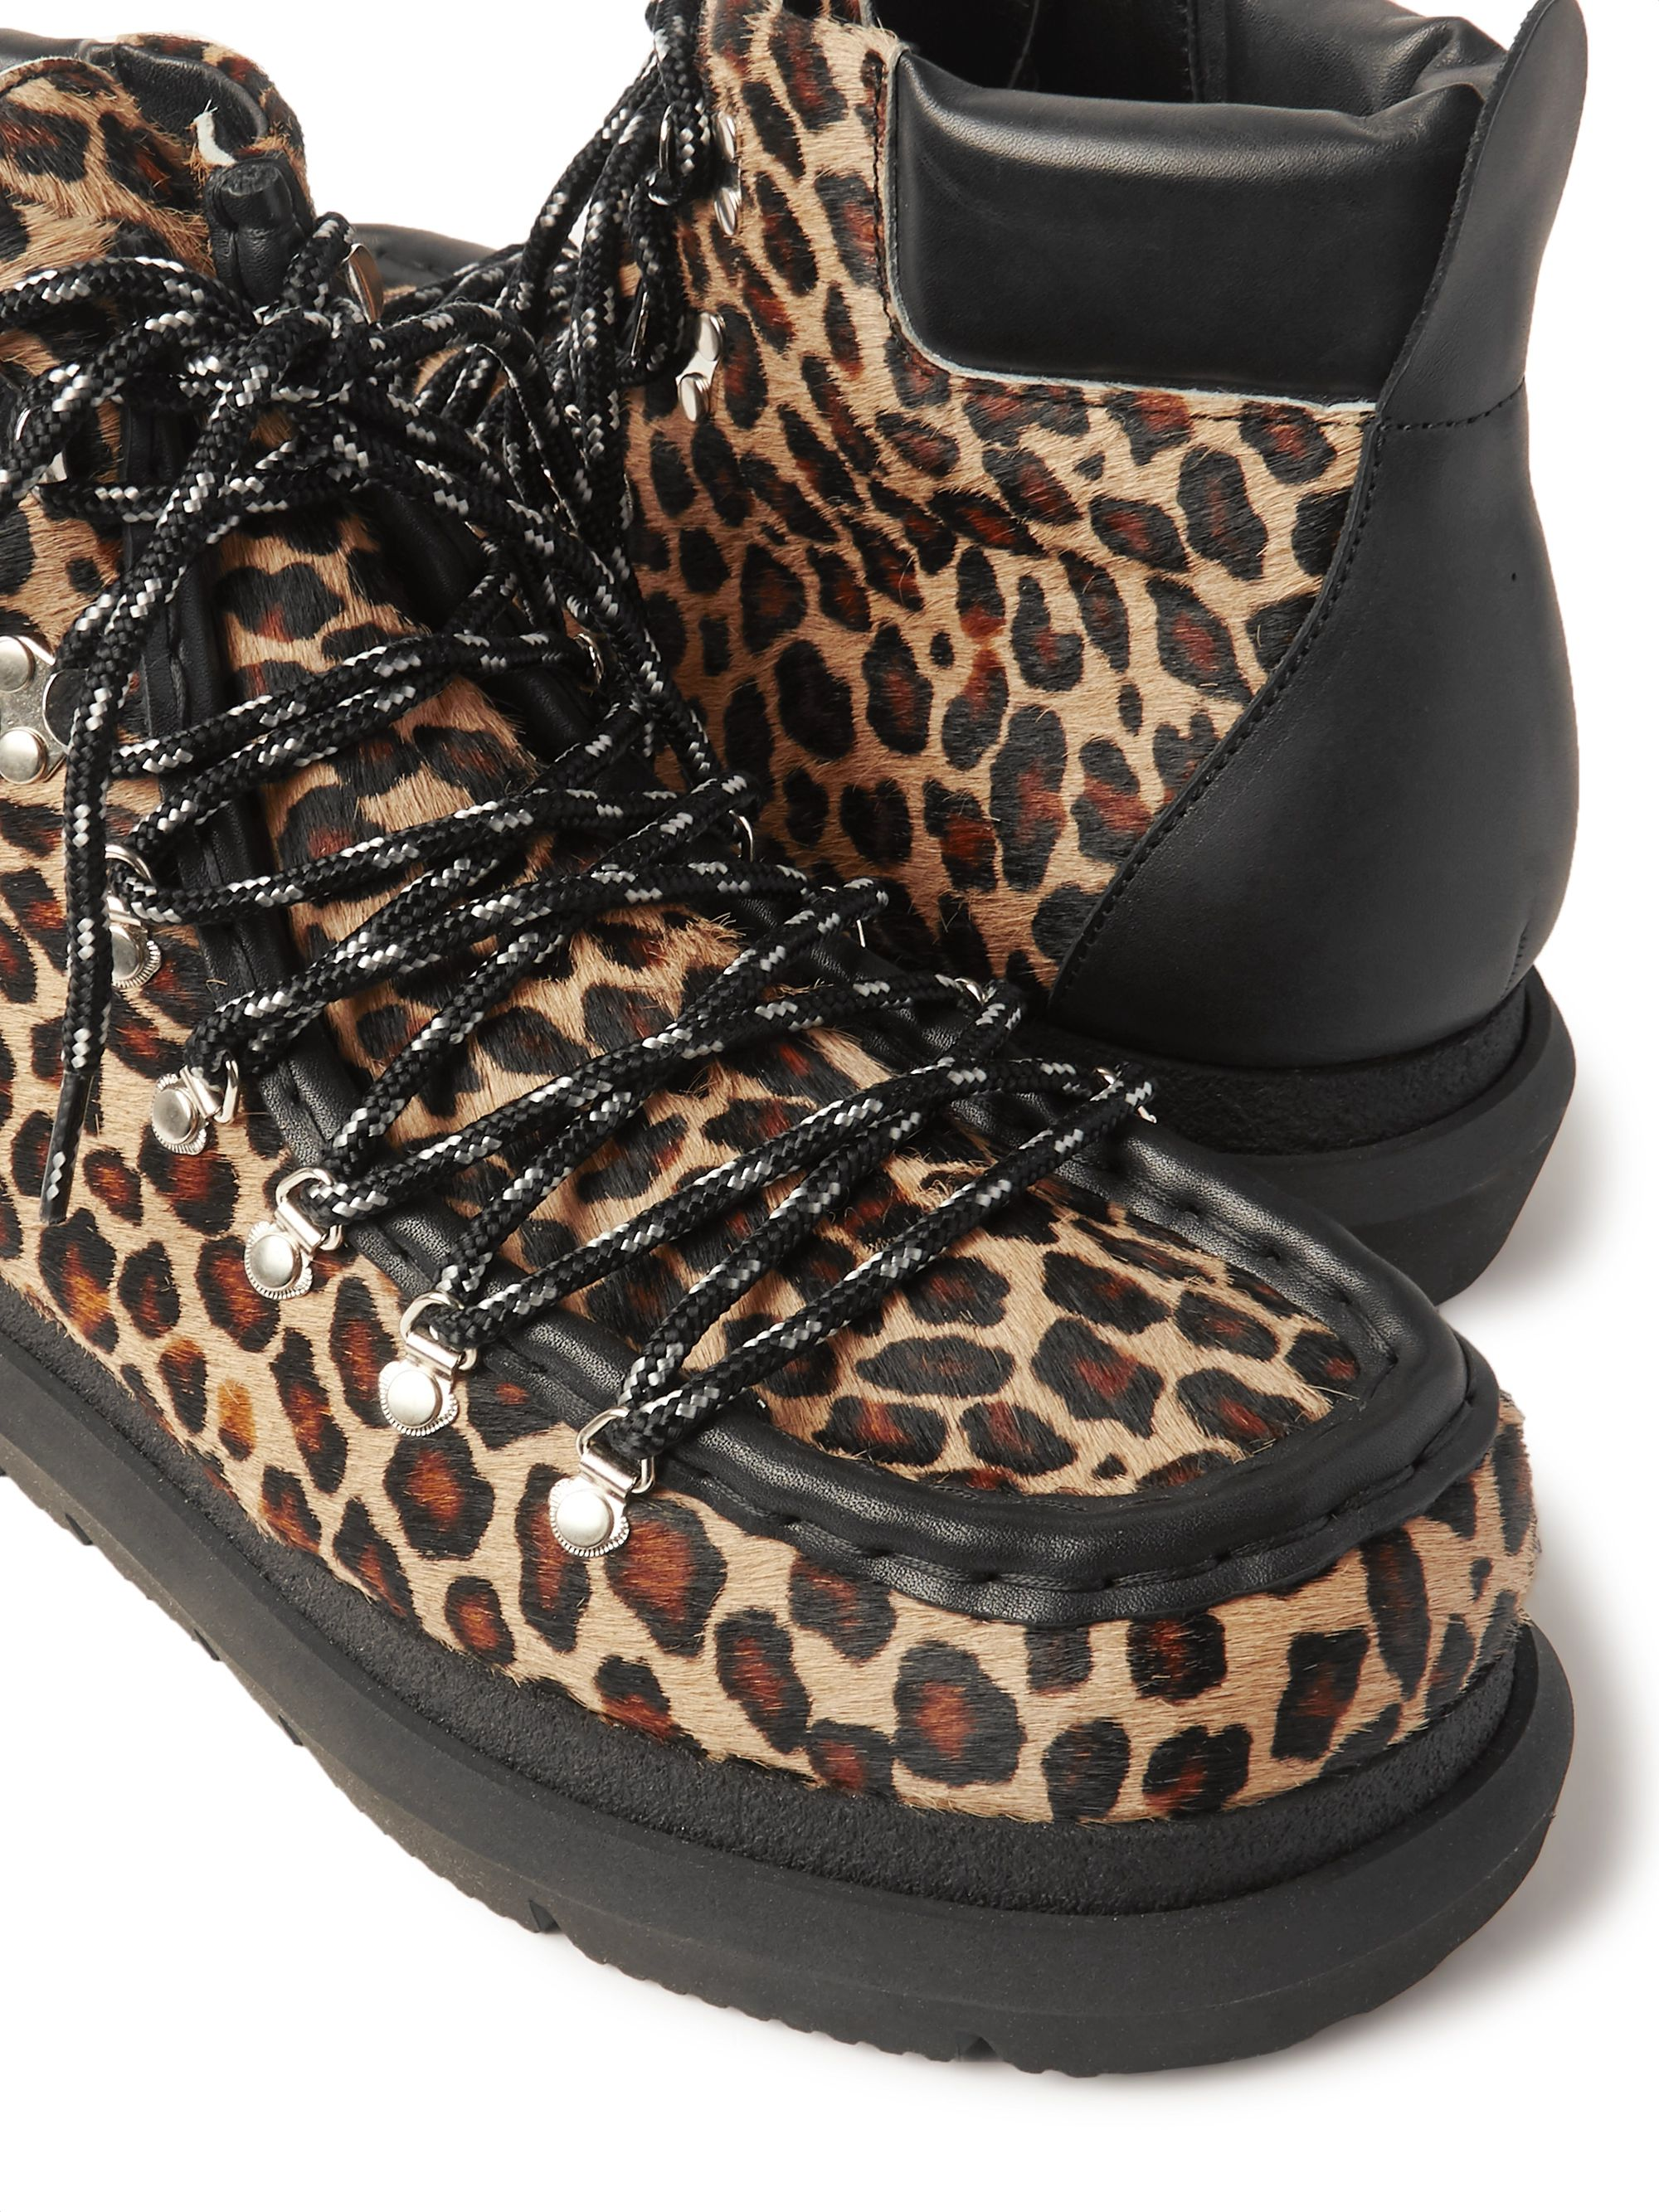 Sacai Leopard-Print Leather-Trimmed Calf Hair Boots